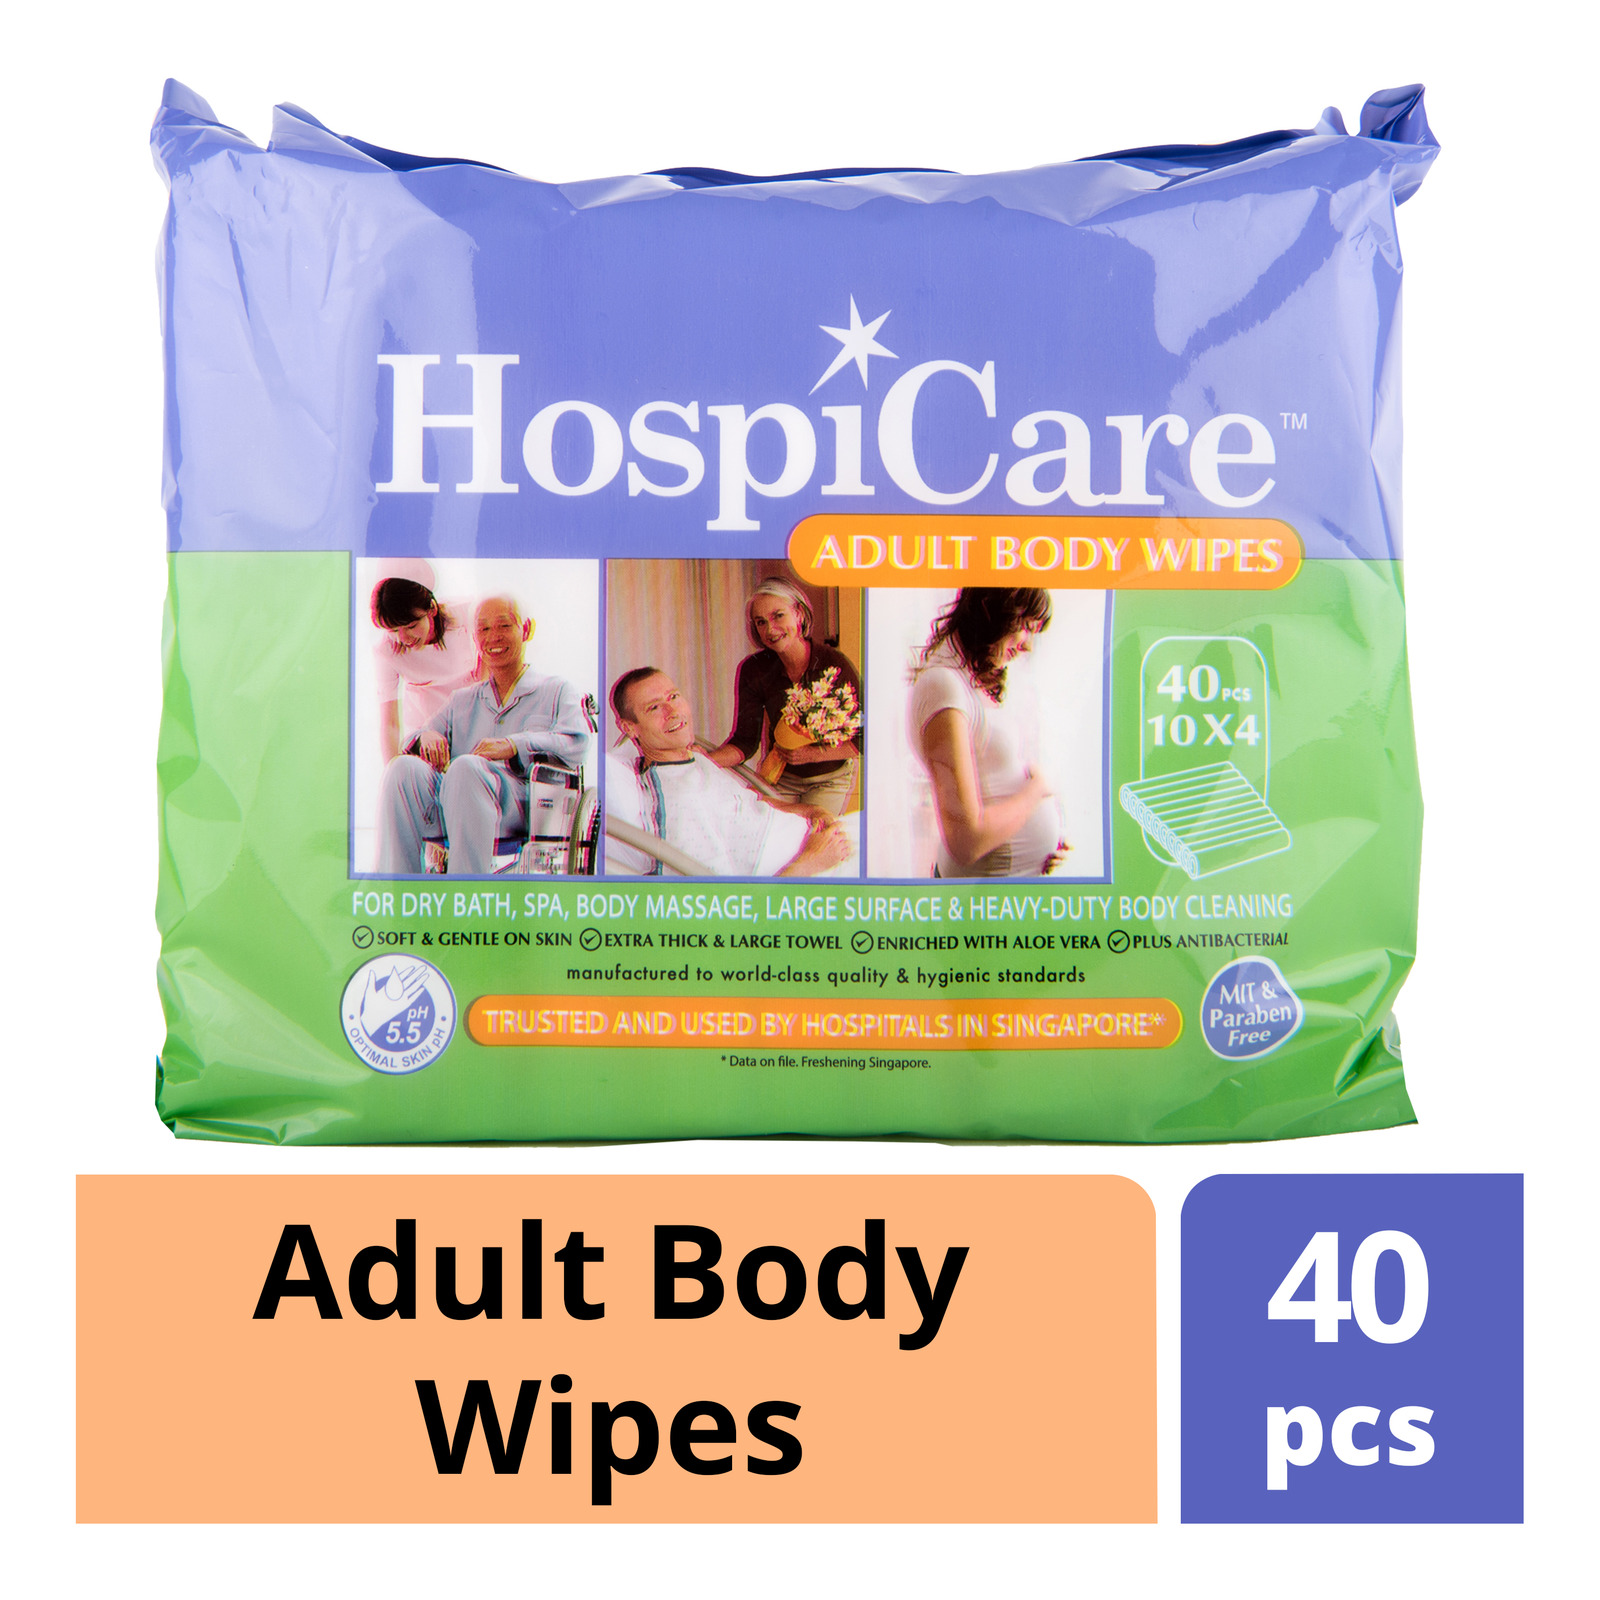 HospiCare Adult Body Wipes